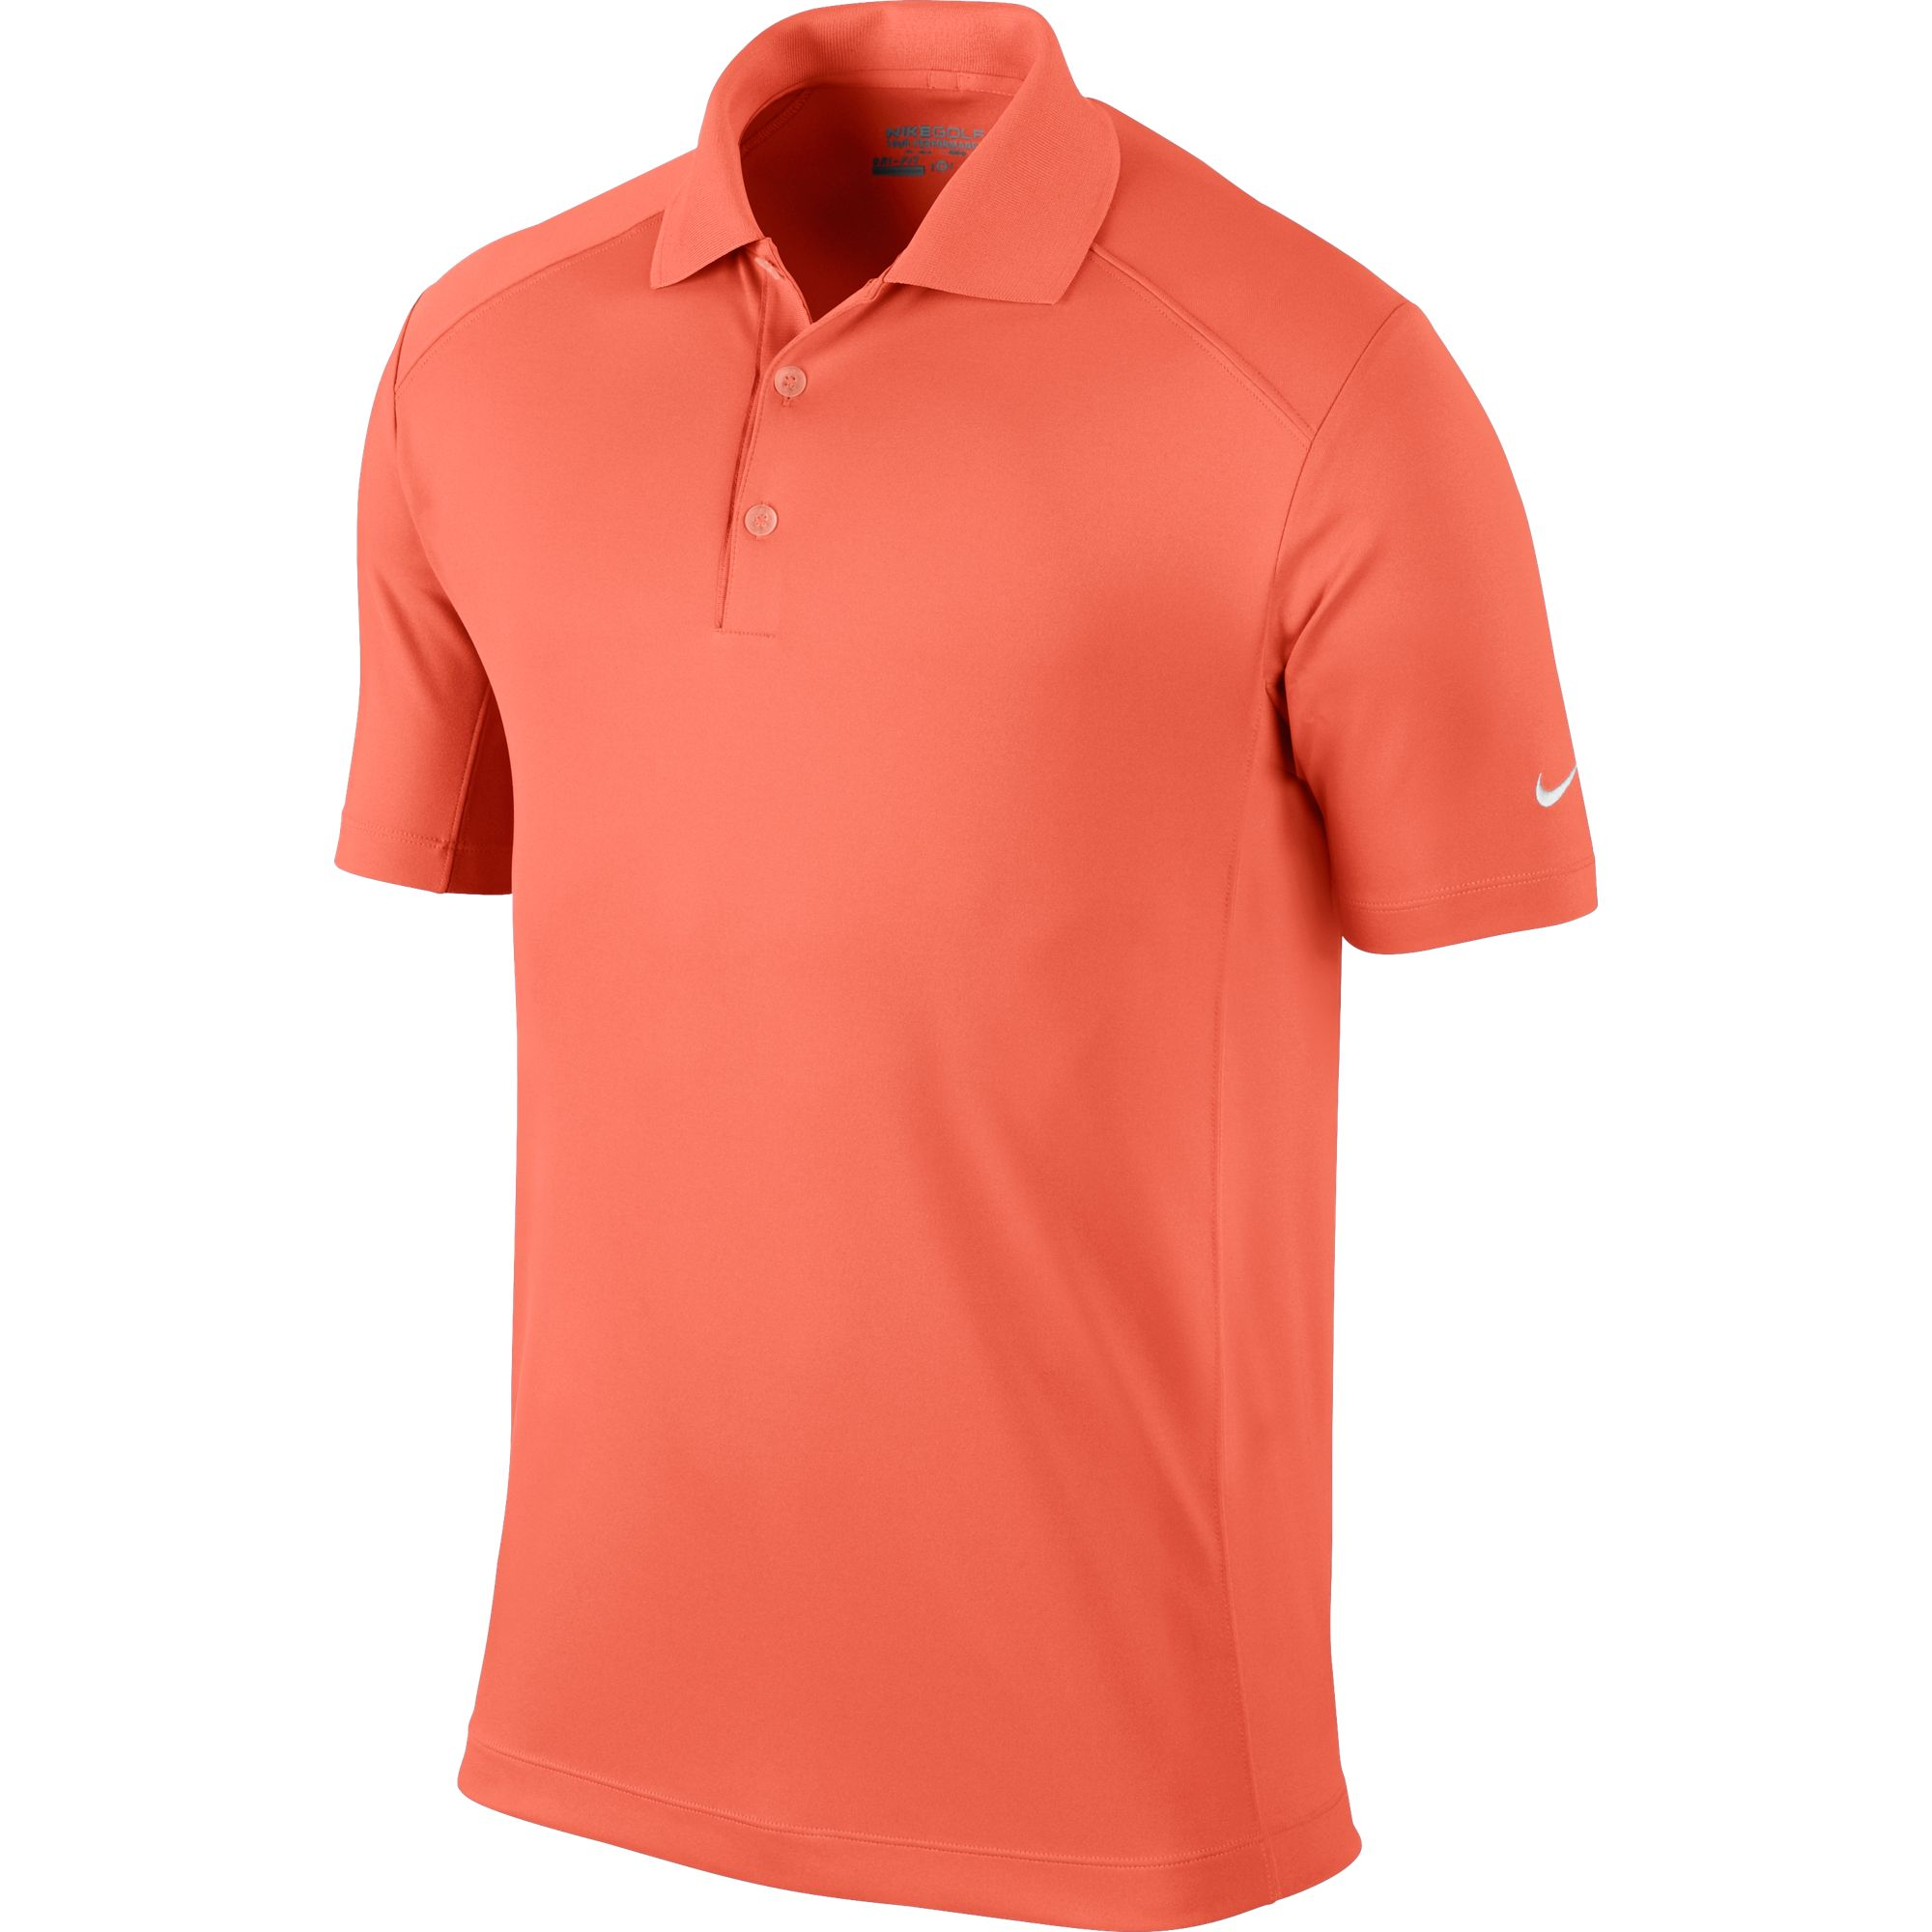 Men's Victory Solid Polo Golf Shirt, Orange, swatch